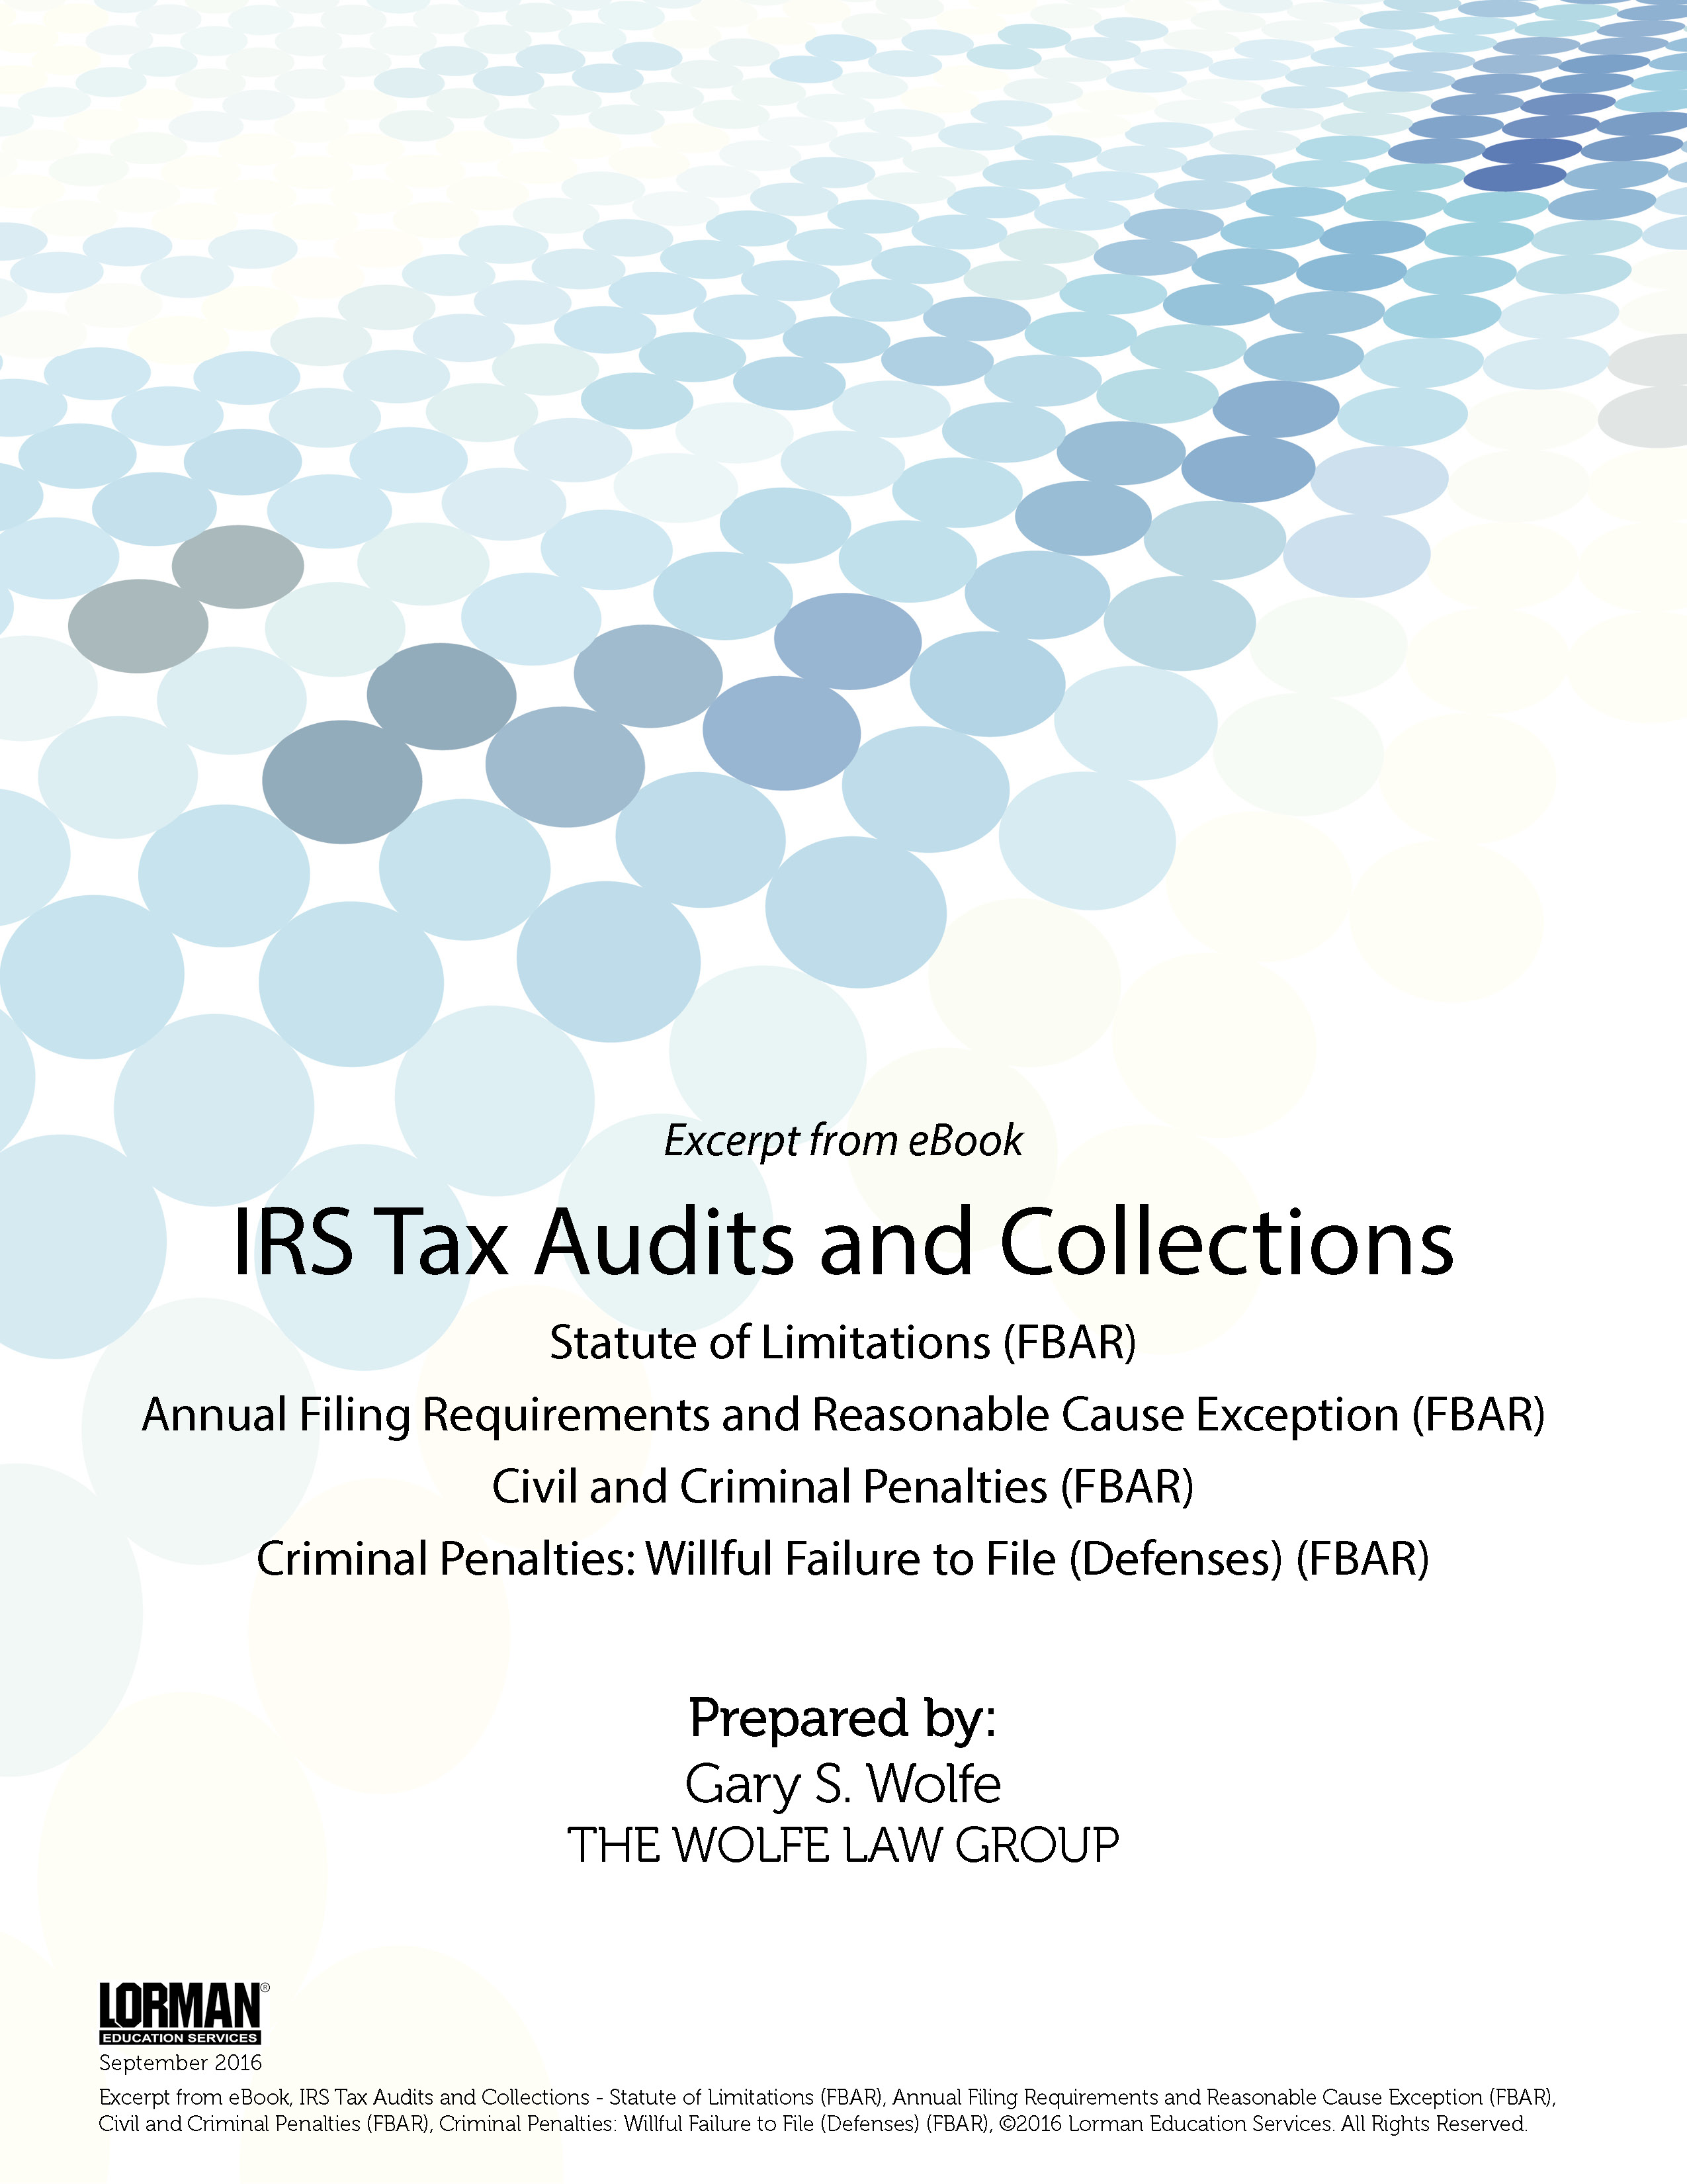 IRS Tax Audits and Collections (FBAR): Statute of Limitations, Annual Filing Requirements and Reasonable Cause Exception, Civil and Criminal Penalties, Willful Failure to File